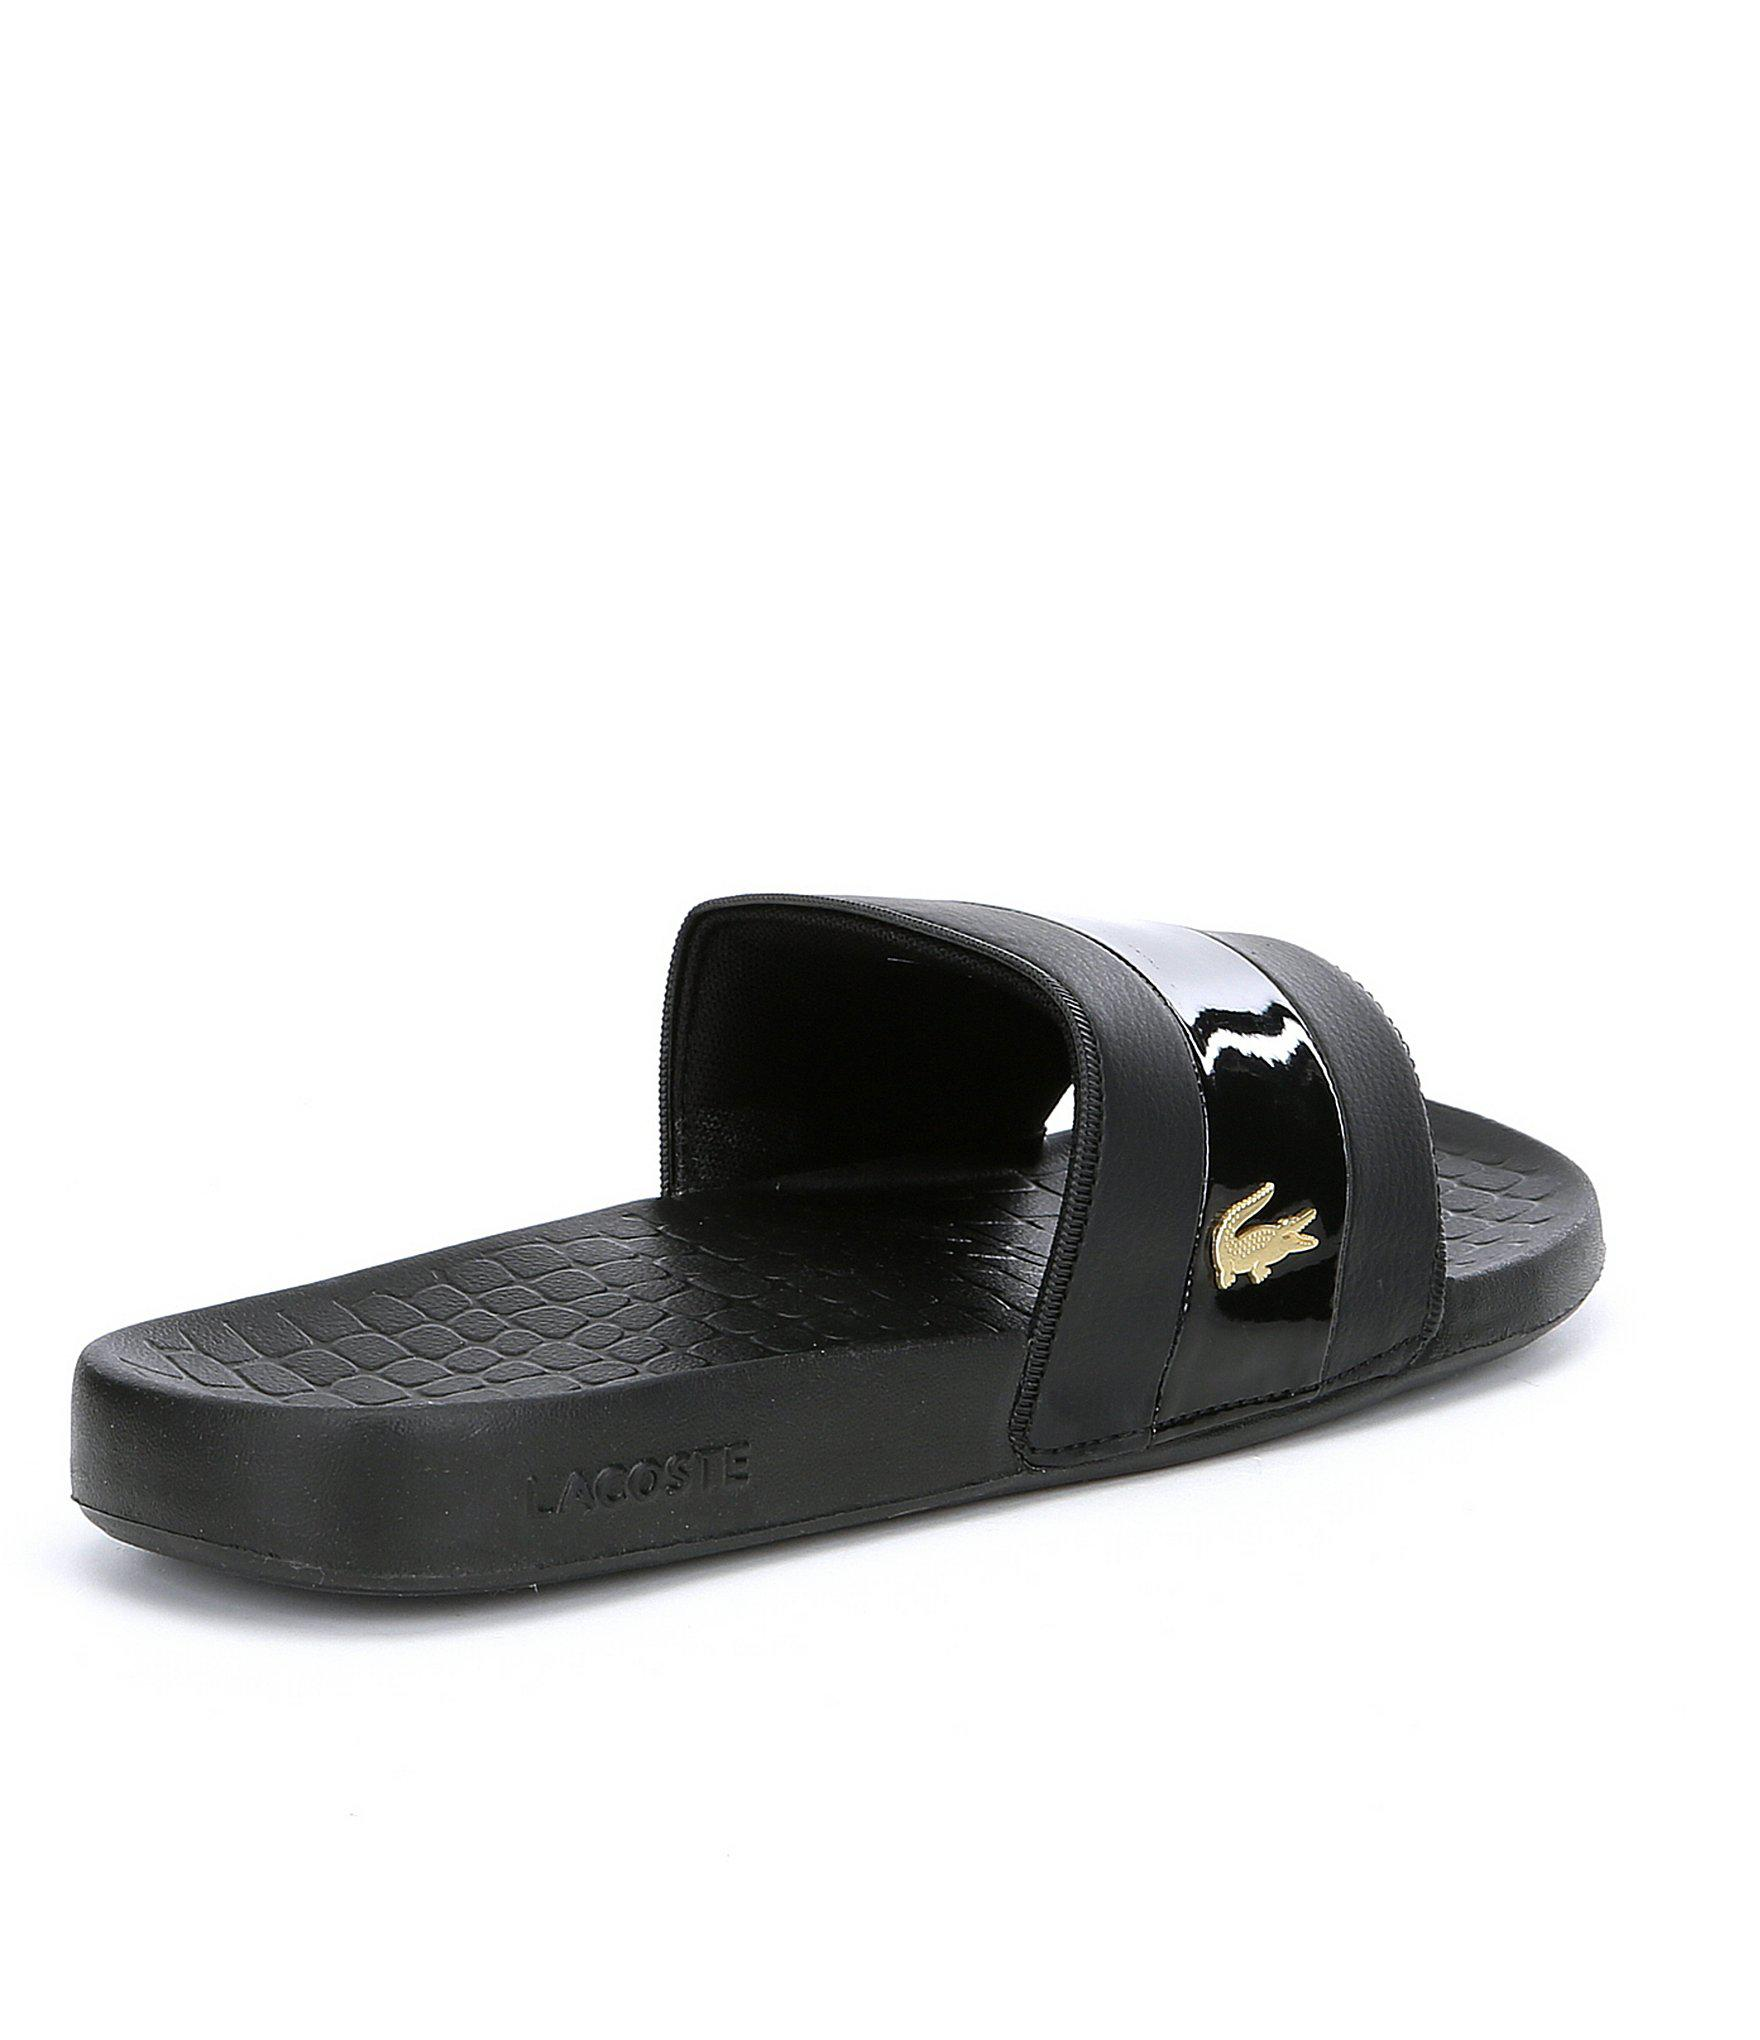 1a4447812701 Lacoste - Black Men s Fraisier 118 Sandals for Men - Lyst. View fullscreen